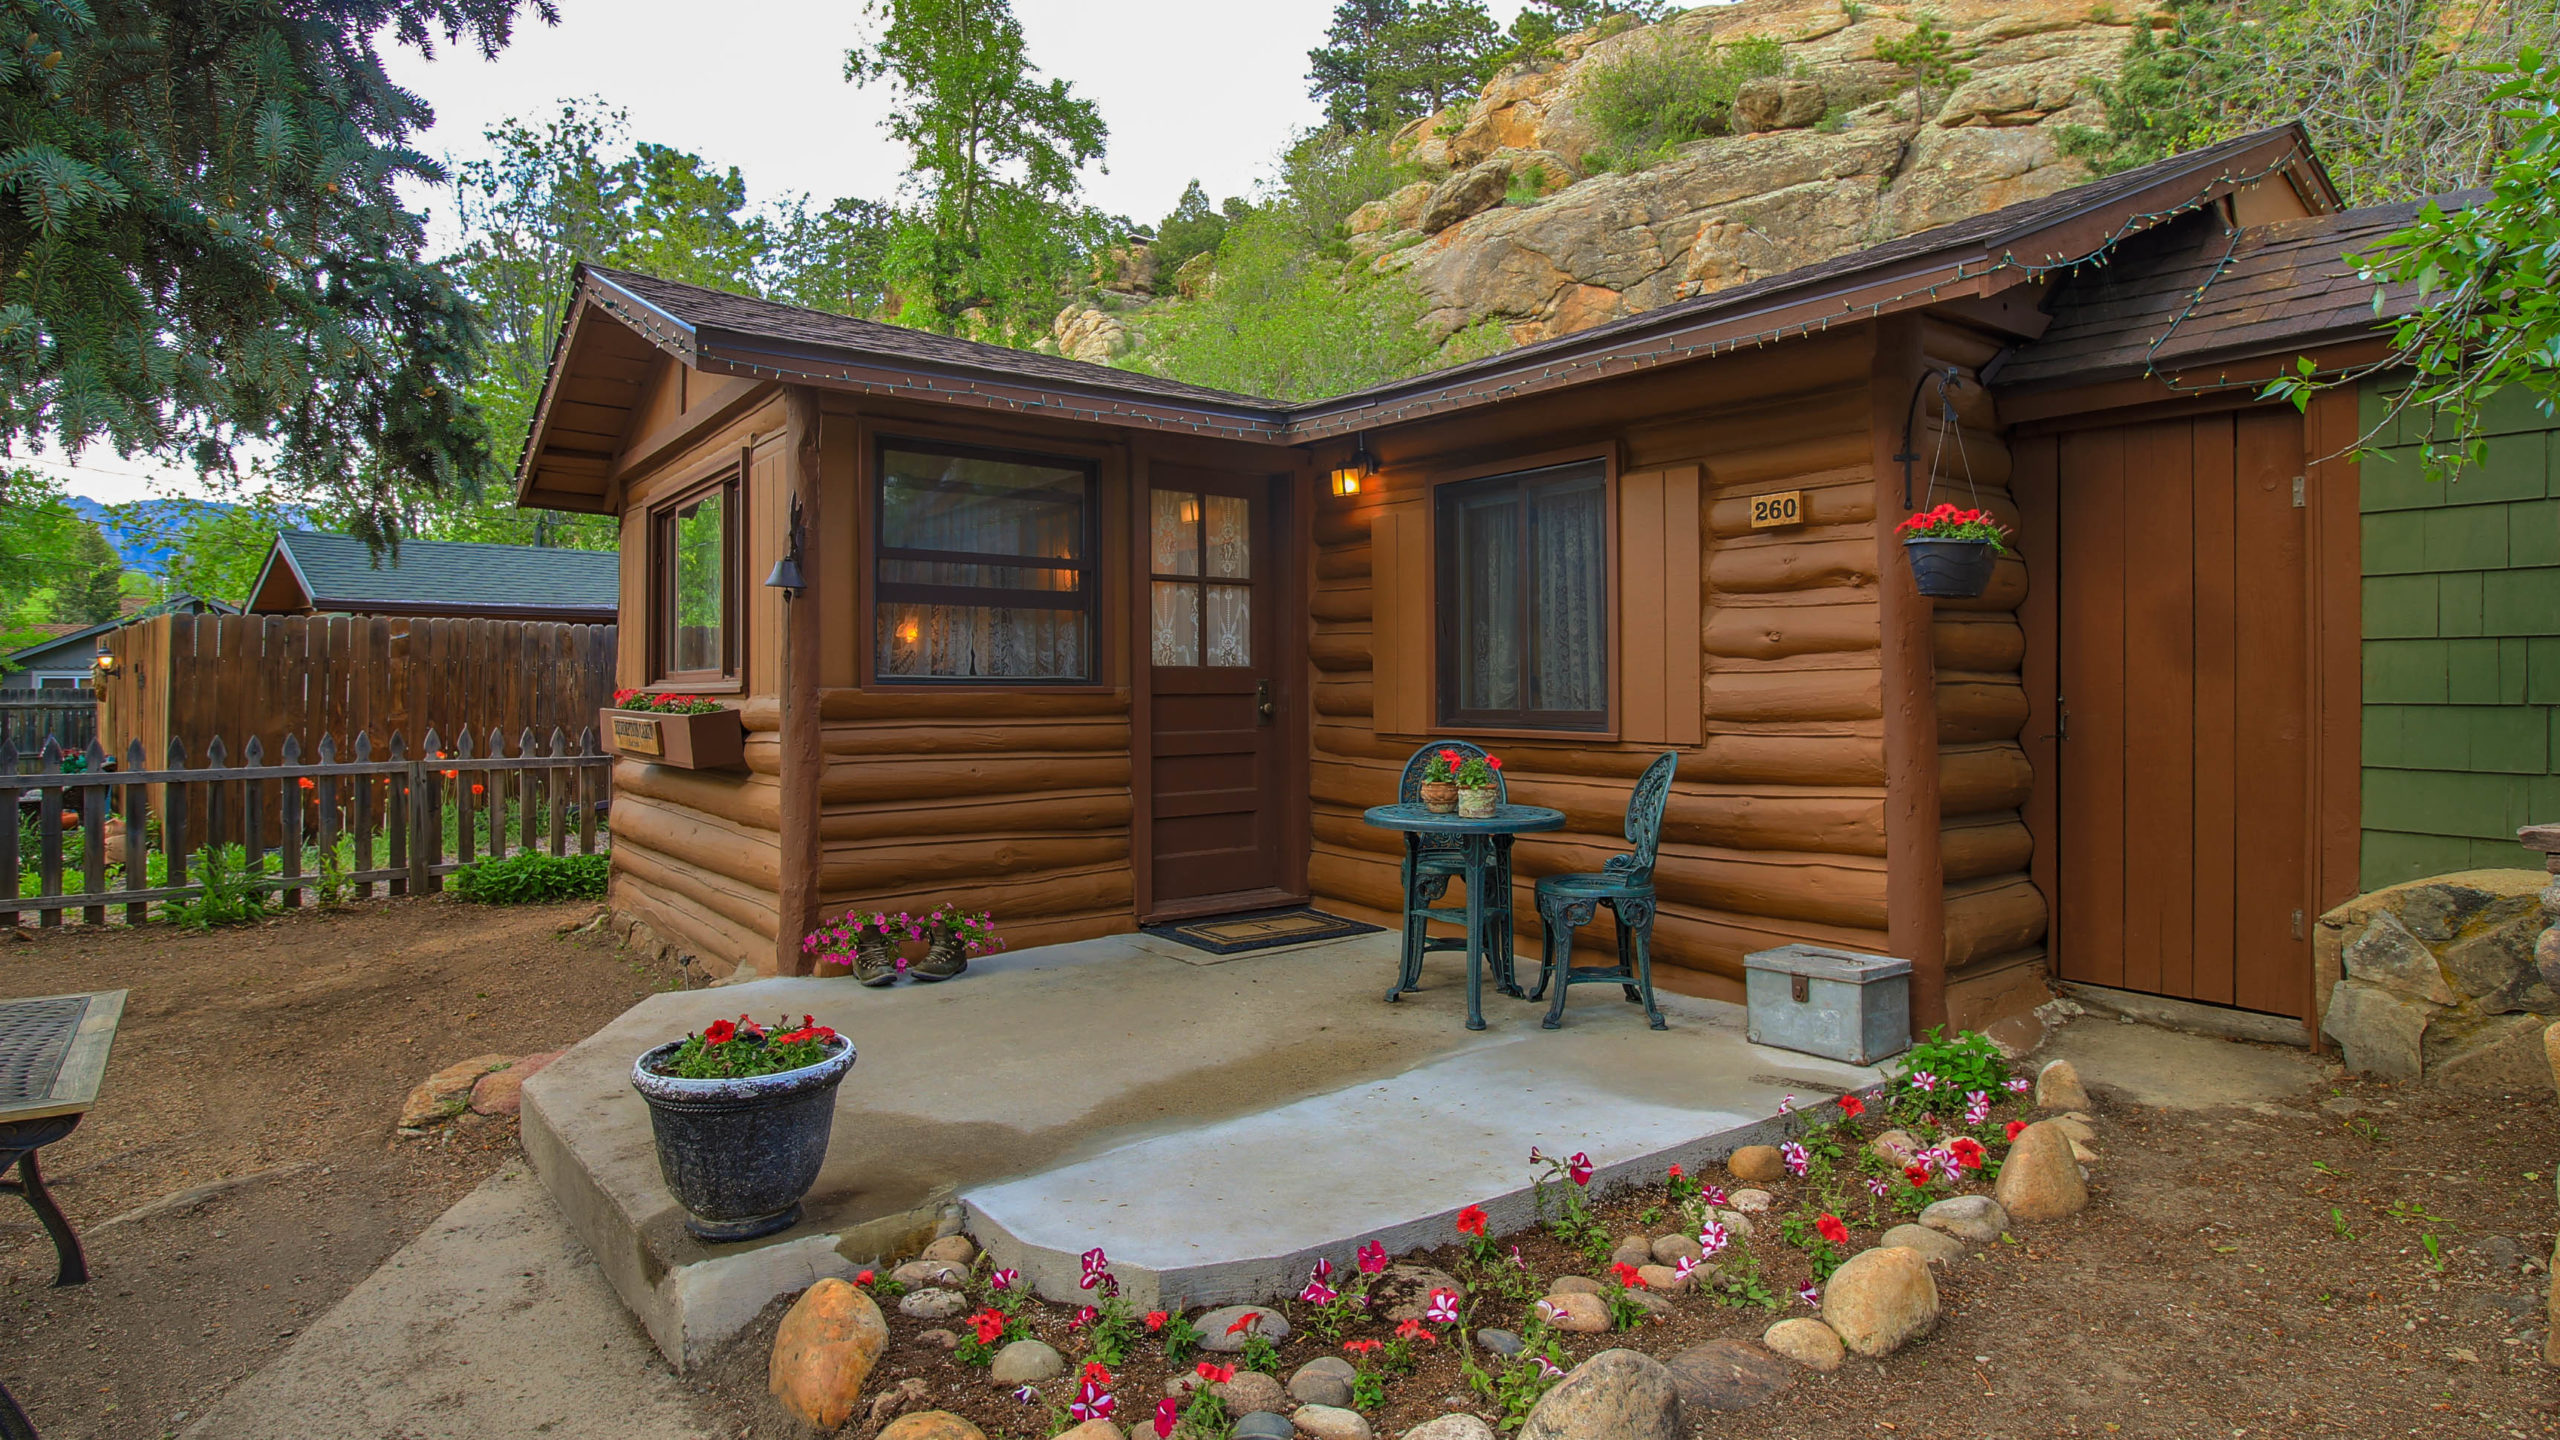 Redemption Cabin is an extraordinary vacation rental cabin near RMNP in Estes Park CO USA